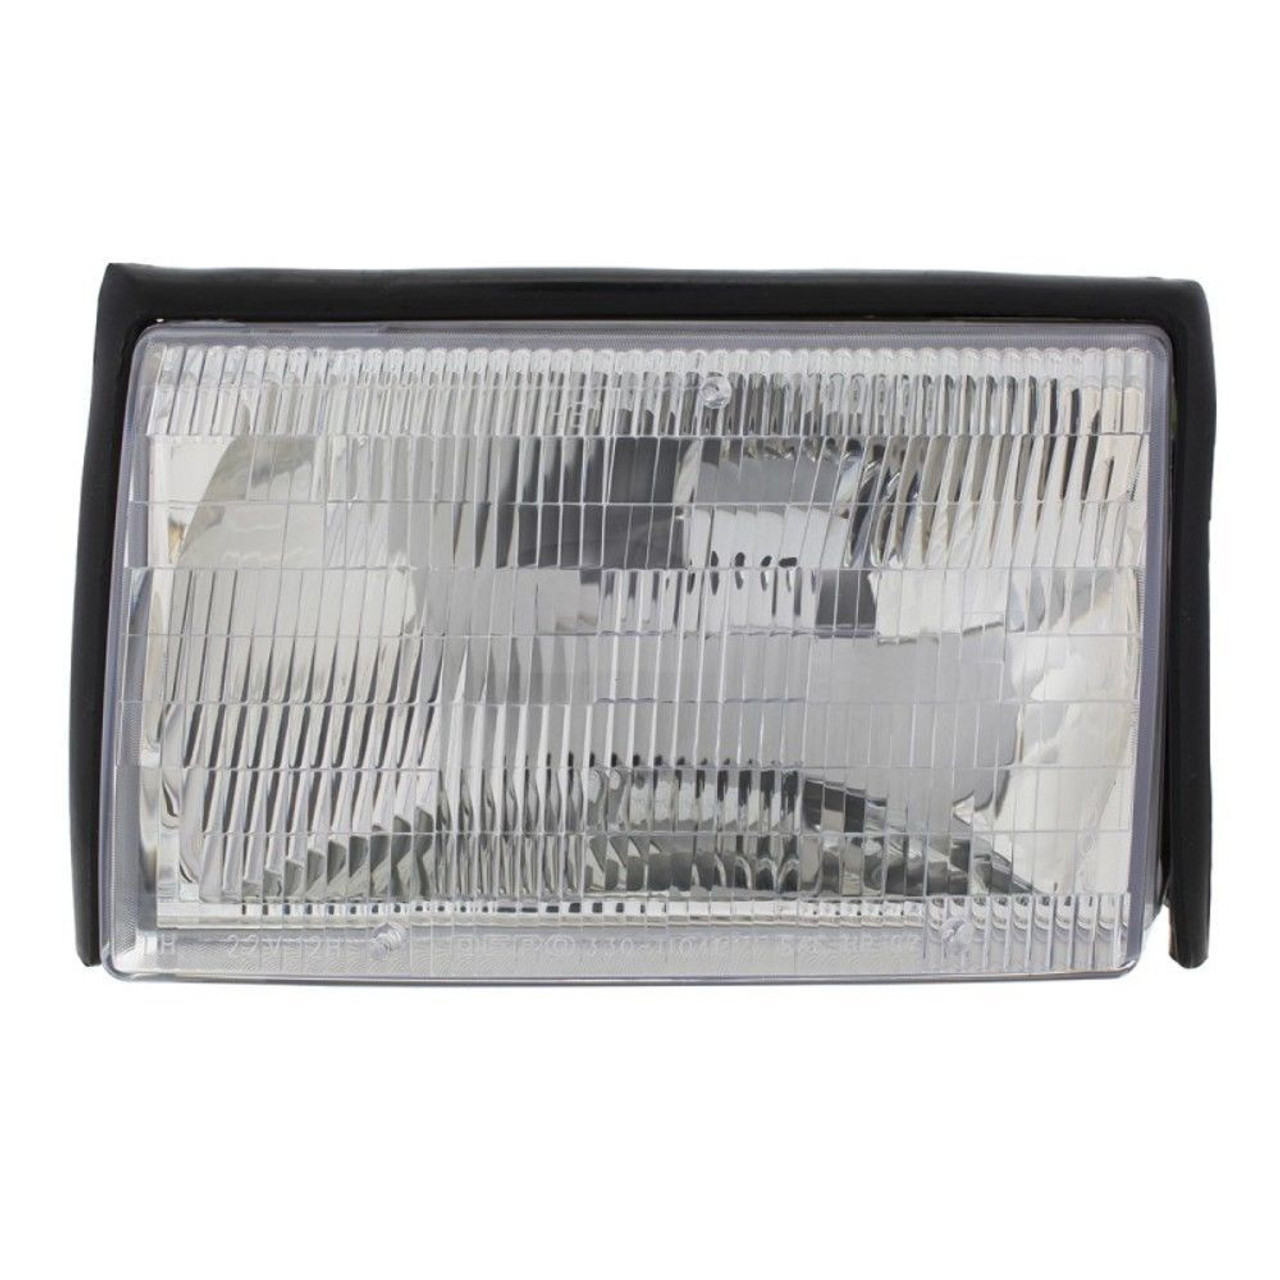 1987-1993 87-93 Ford Mustang Headlamp Assembly - Left Hand Side